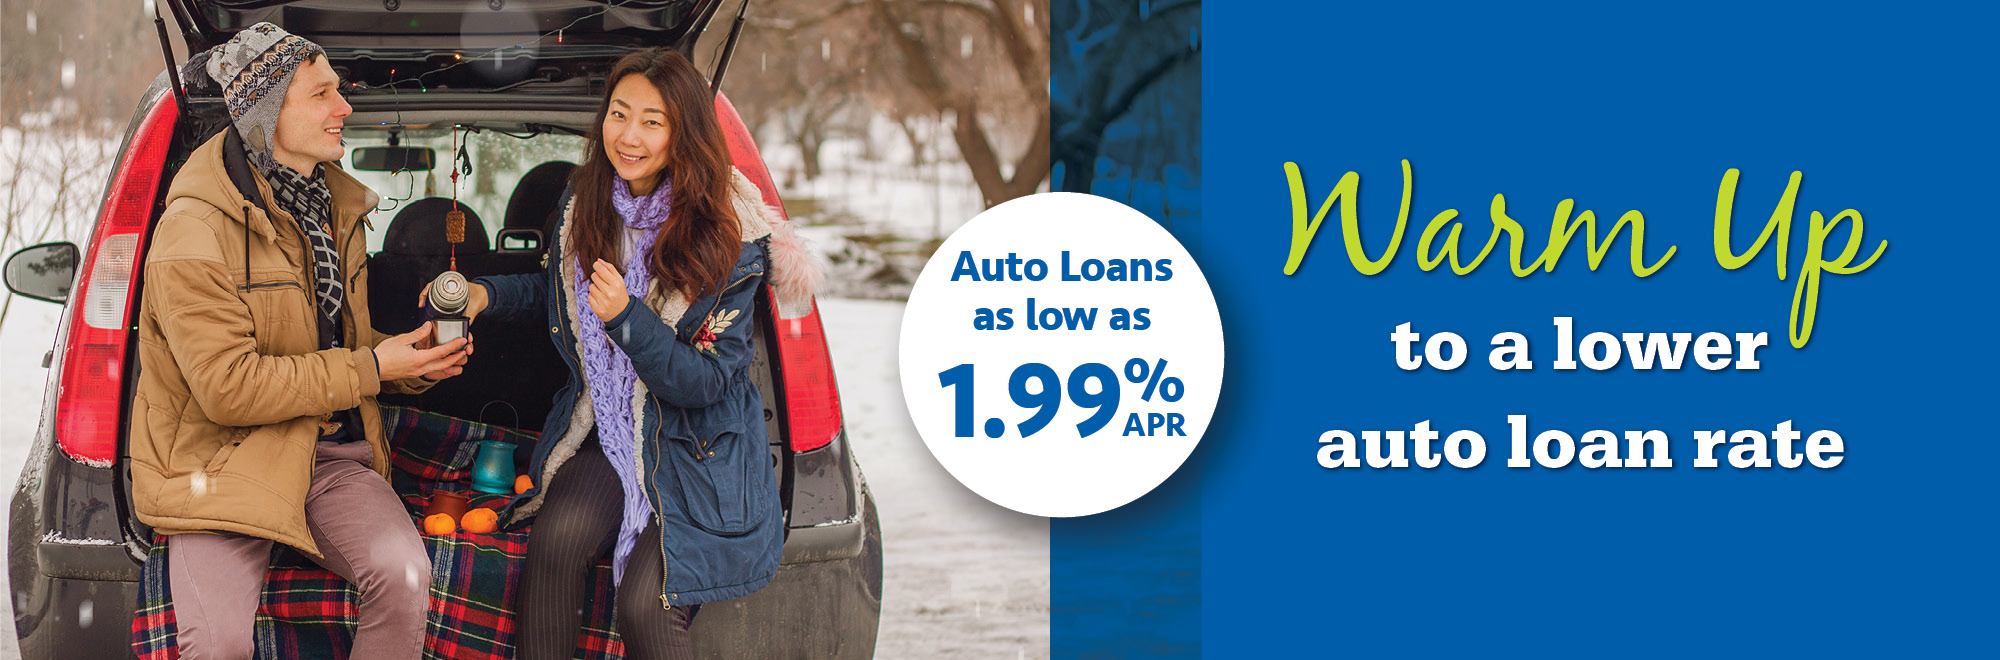 Warm Up to a lower auto loan rate. Auto loans as low as 1.99% APR.